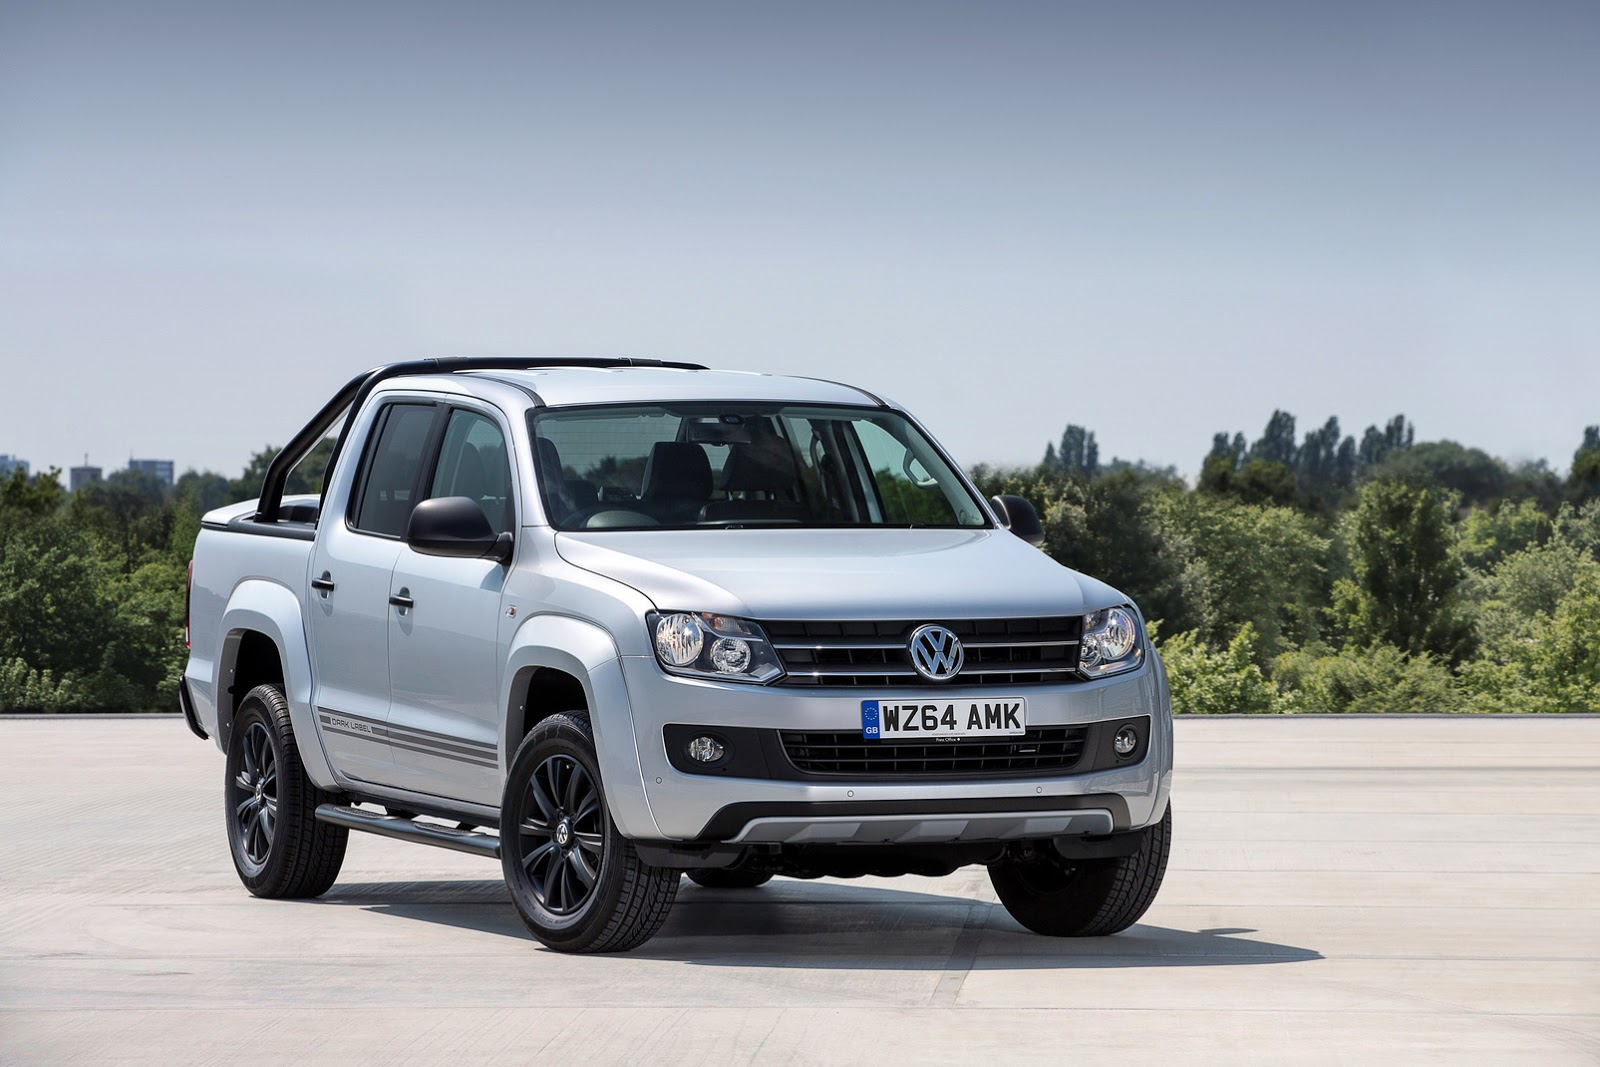 New Vw Amarok Dark Label Limited Edition Offered In The Uk